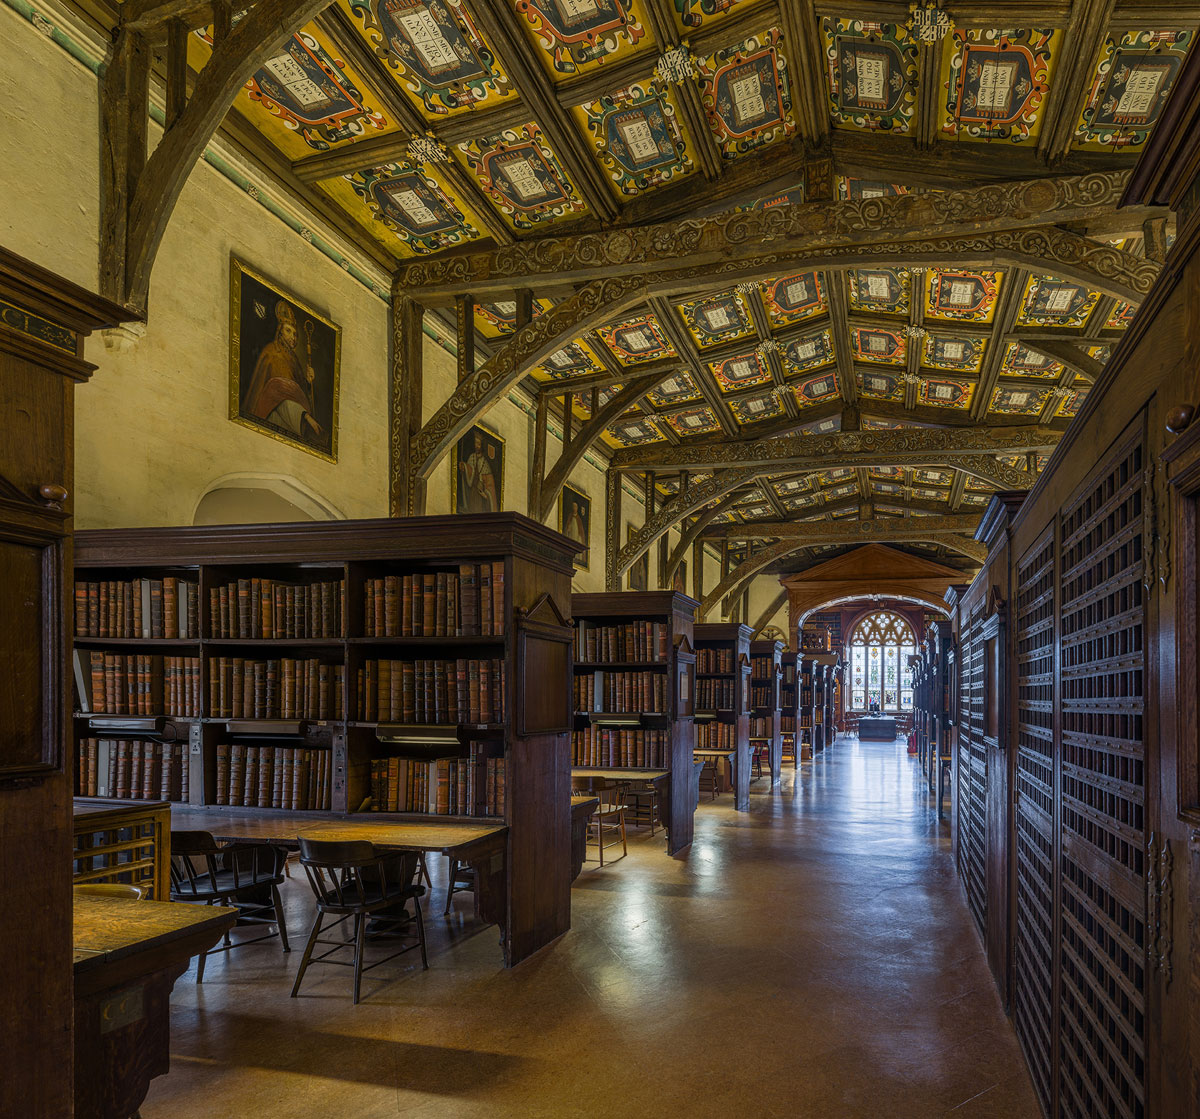 duke humfreys library bodleian libary university of oxford by david iliff 1 This Reading Room at the University of Oxford is One of the Oldest in Europe